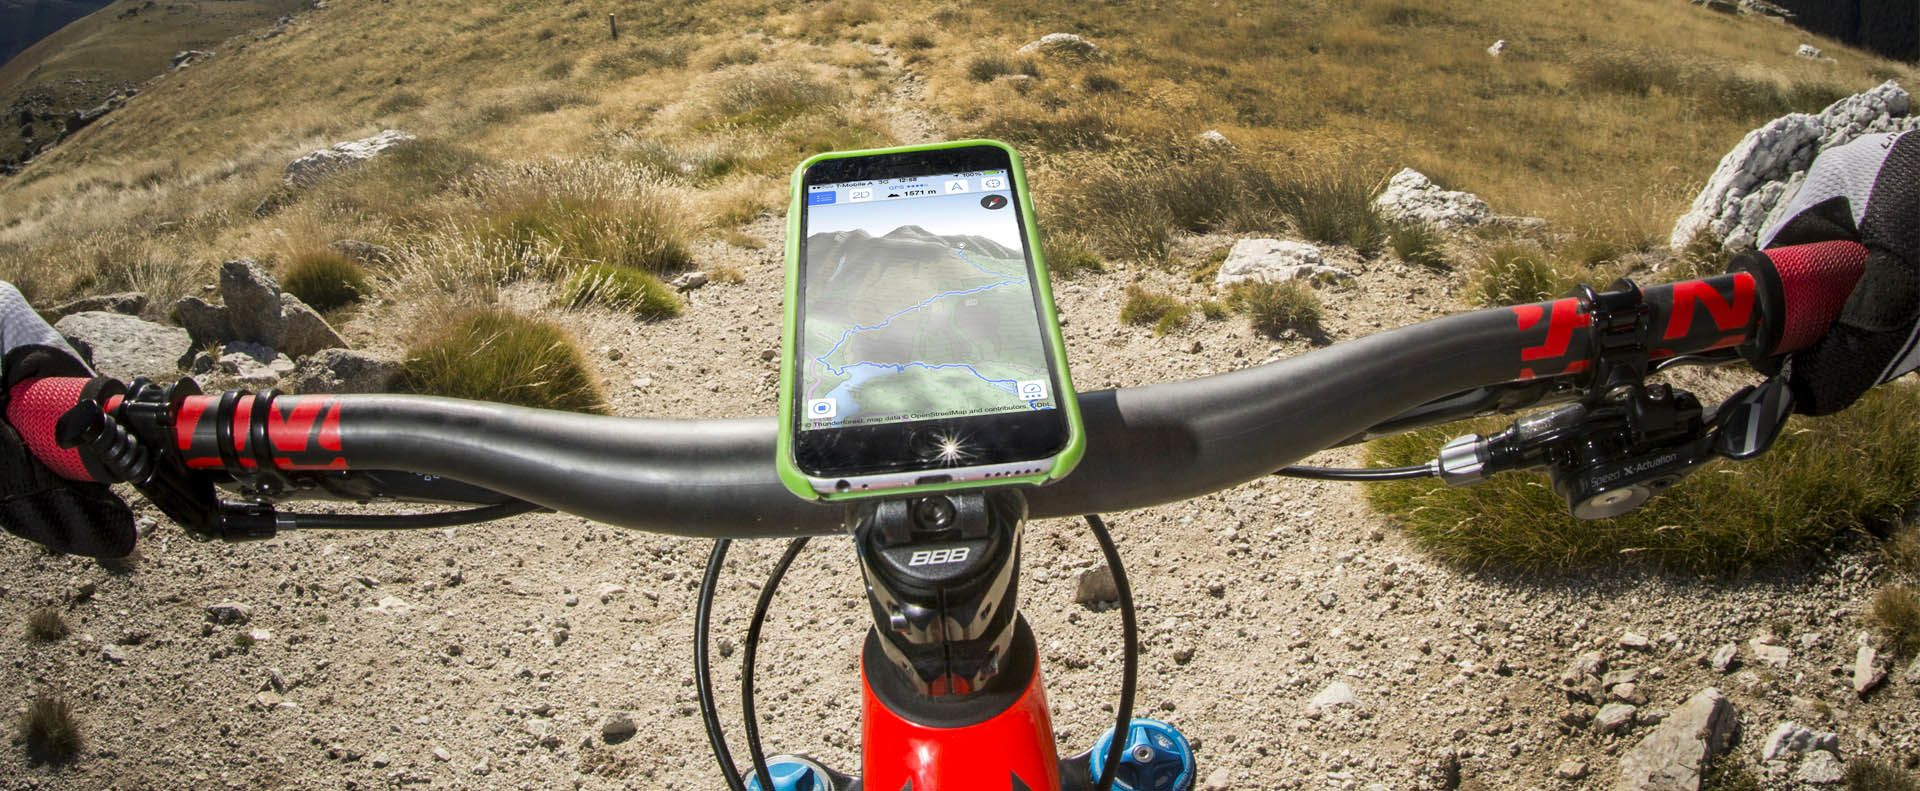 Biking with your smartphone